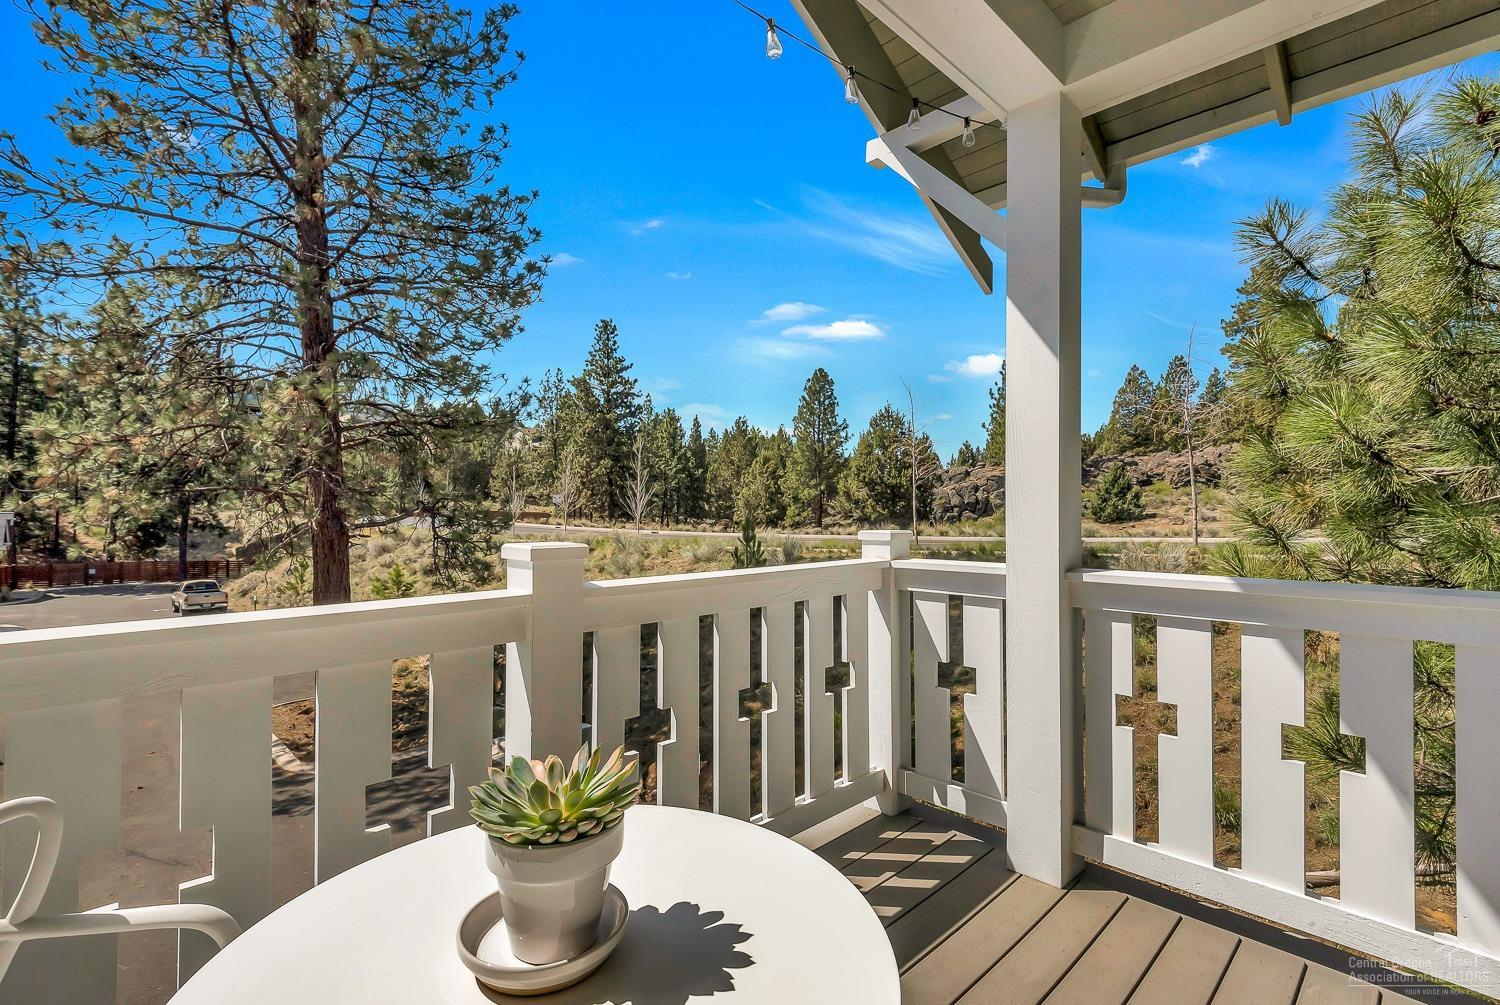 covered deck with white railing overlooking natural landscape in Bend, Oregon